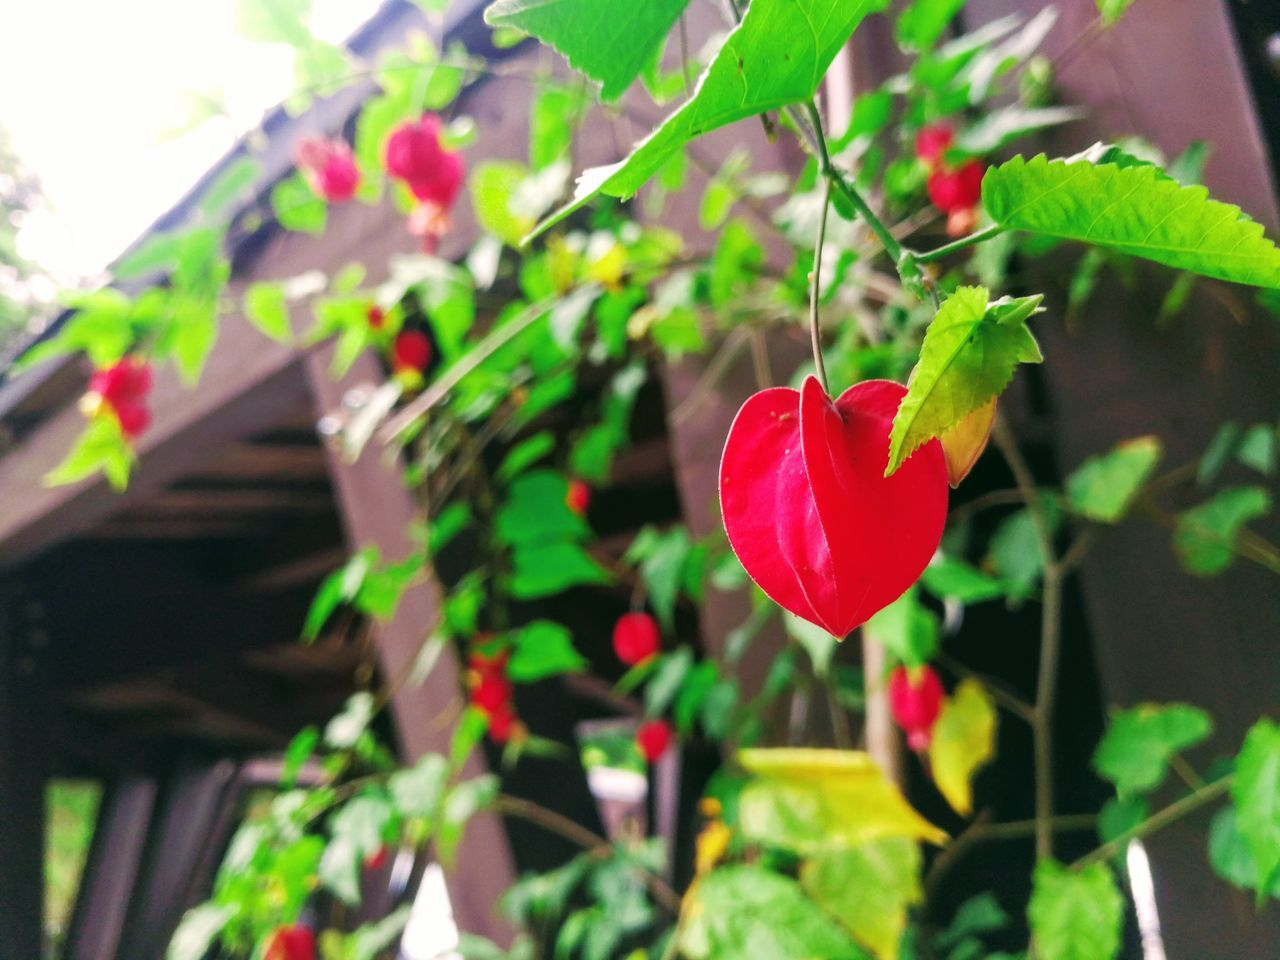 growth, red, plant, leaf, nature, no people, day, beauty in nature, outdoors, green color, freshness, fragility, close-up, flower, tree